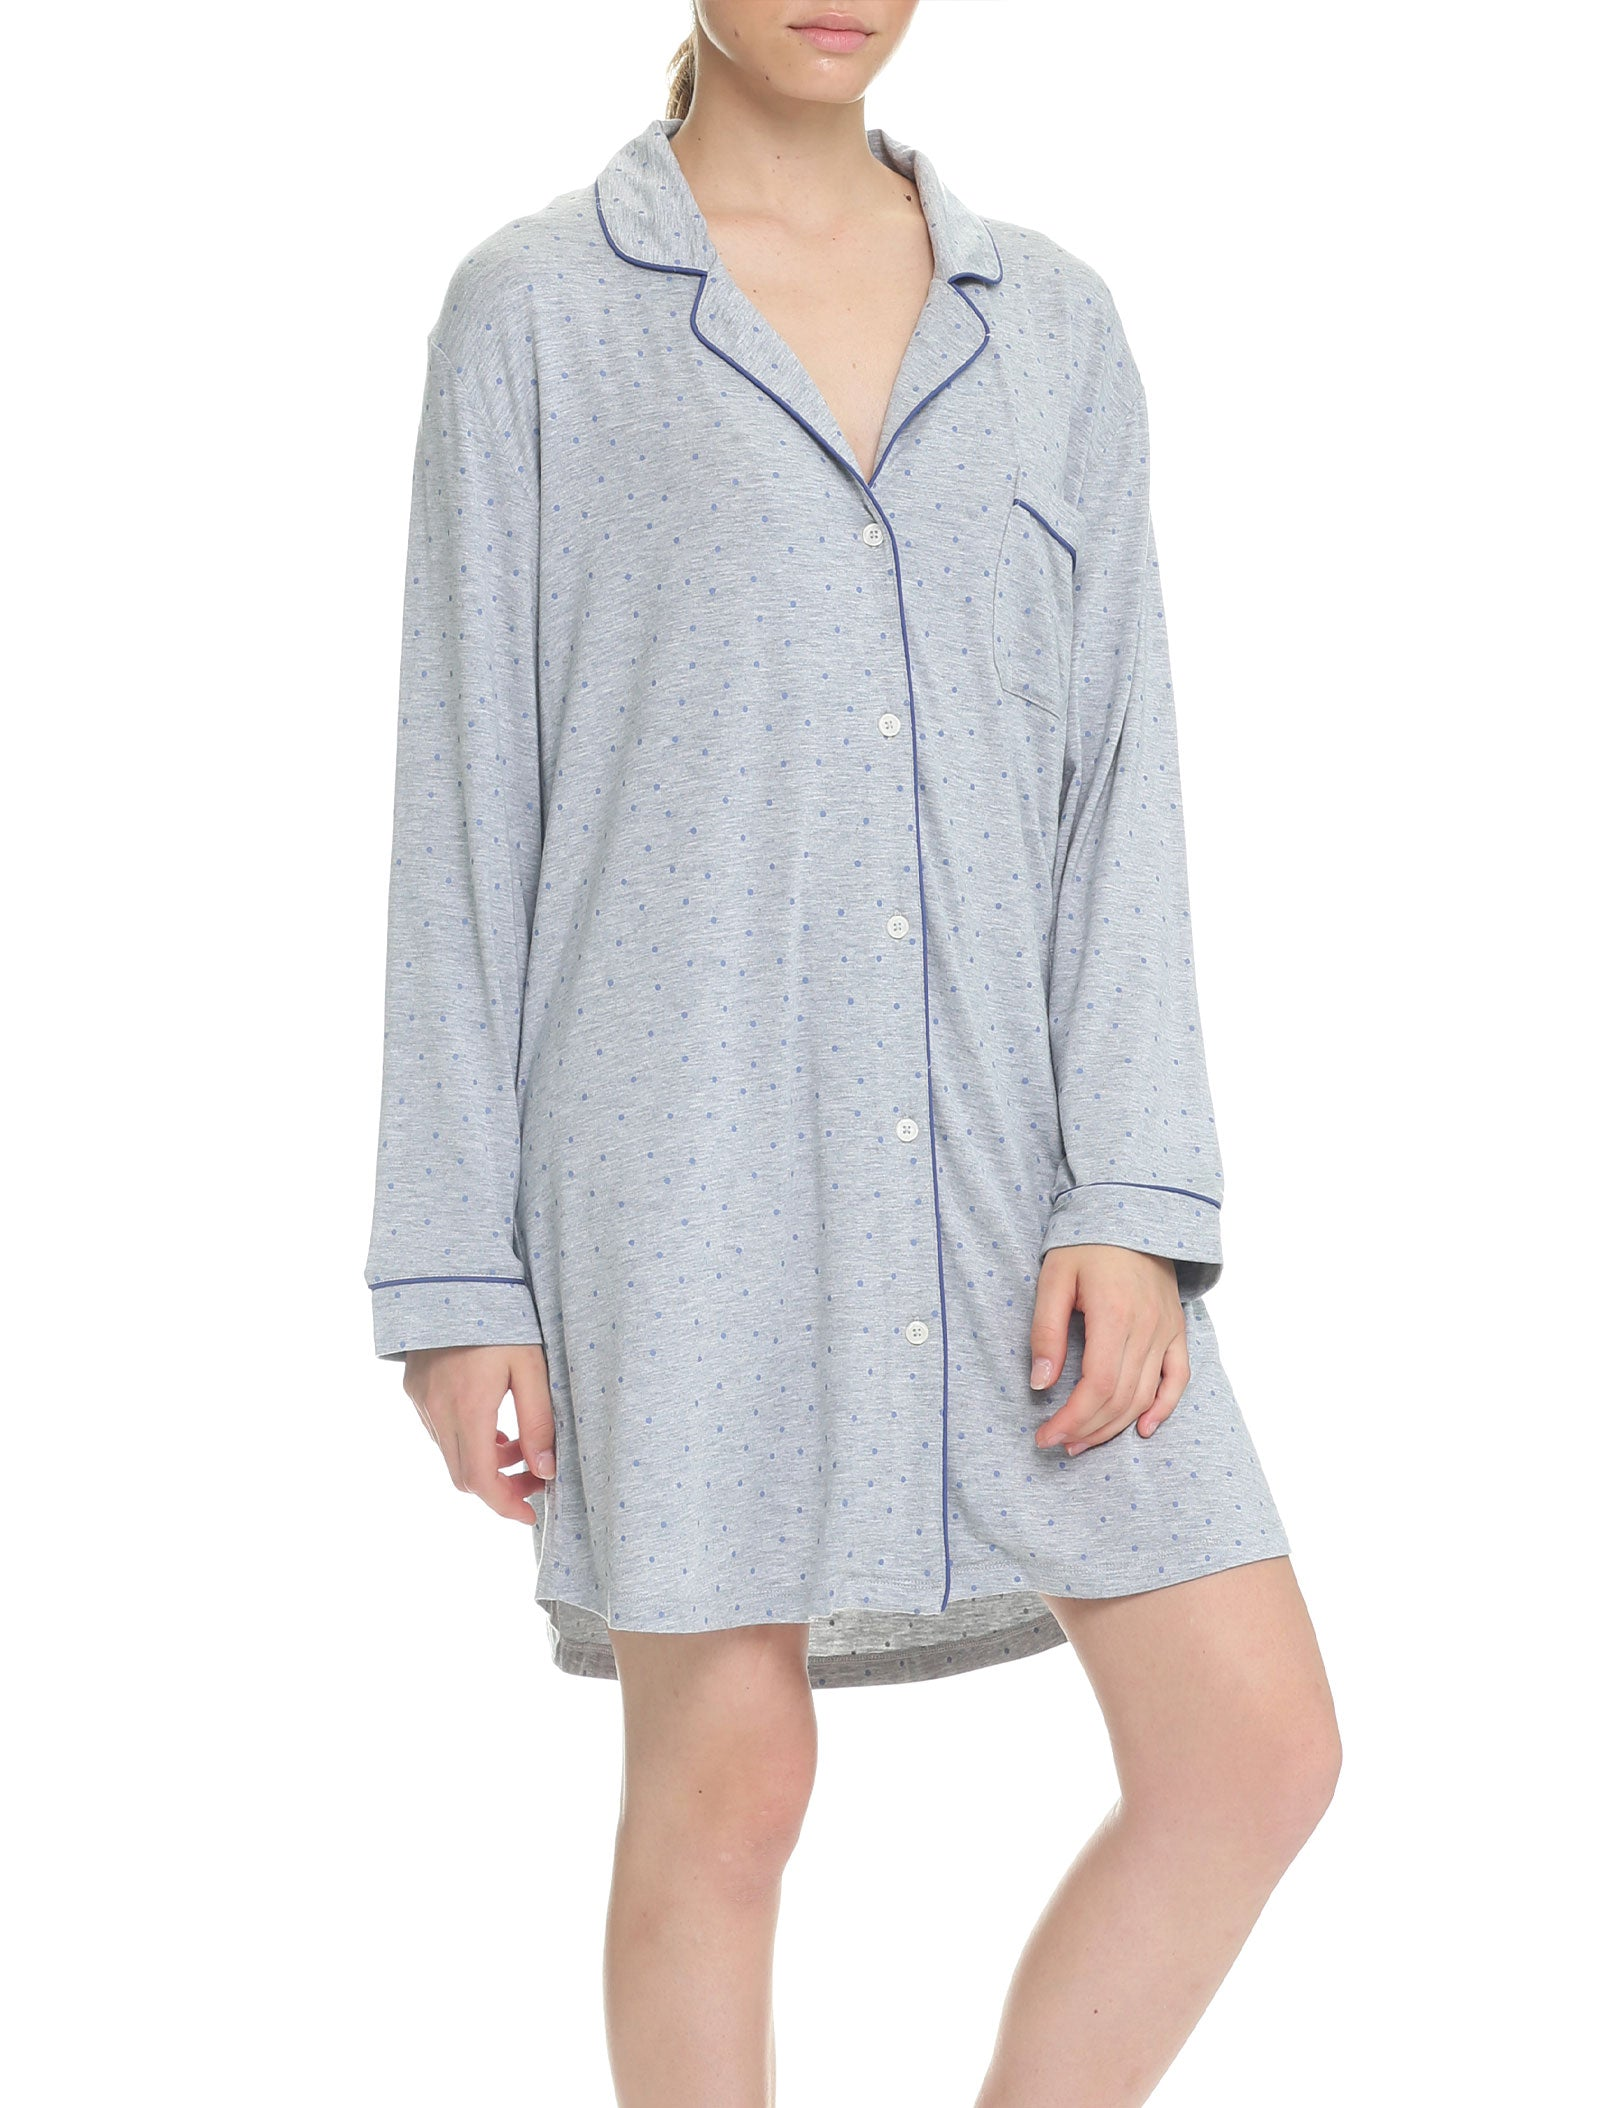 Indigo Spot Modal Soft Kate Nightshirt